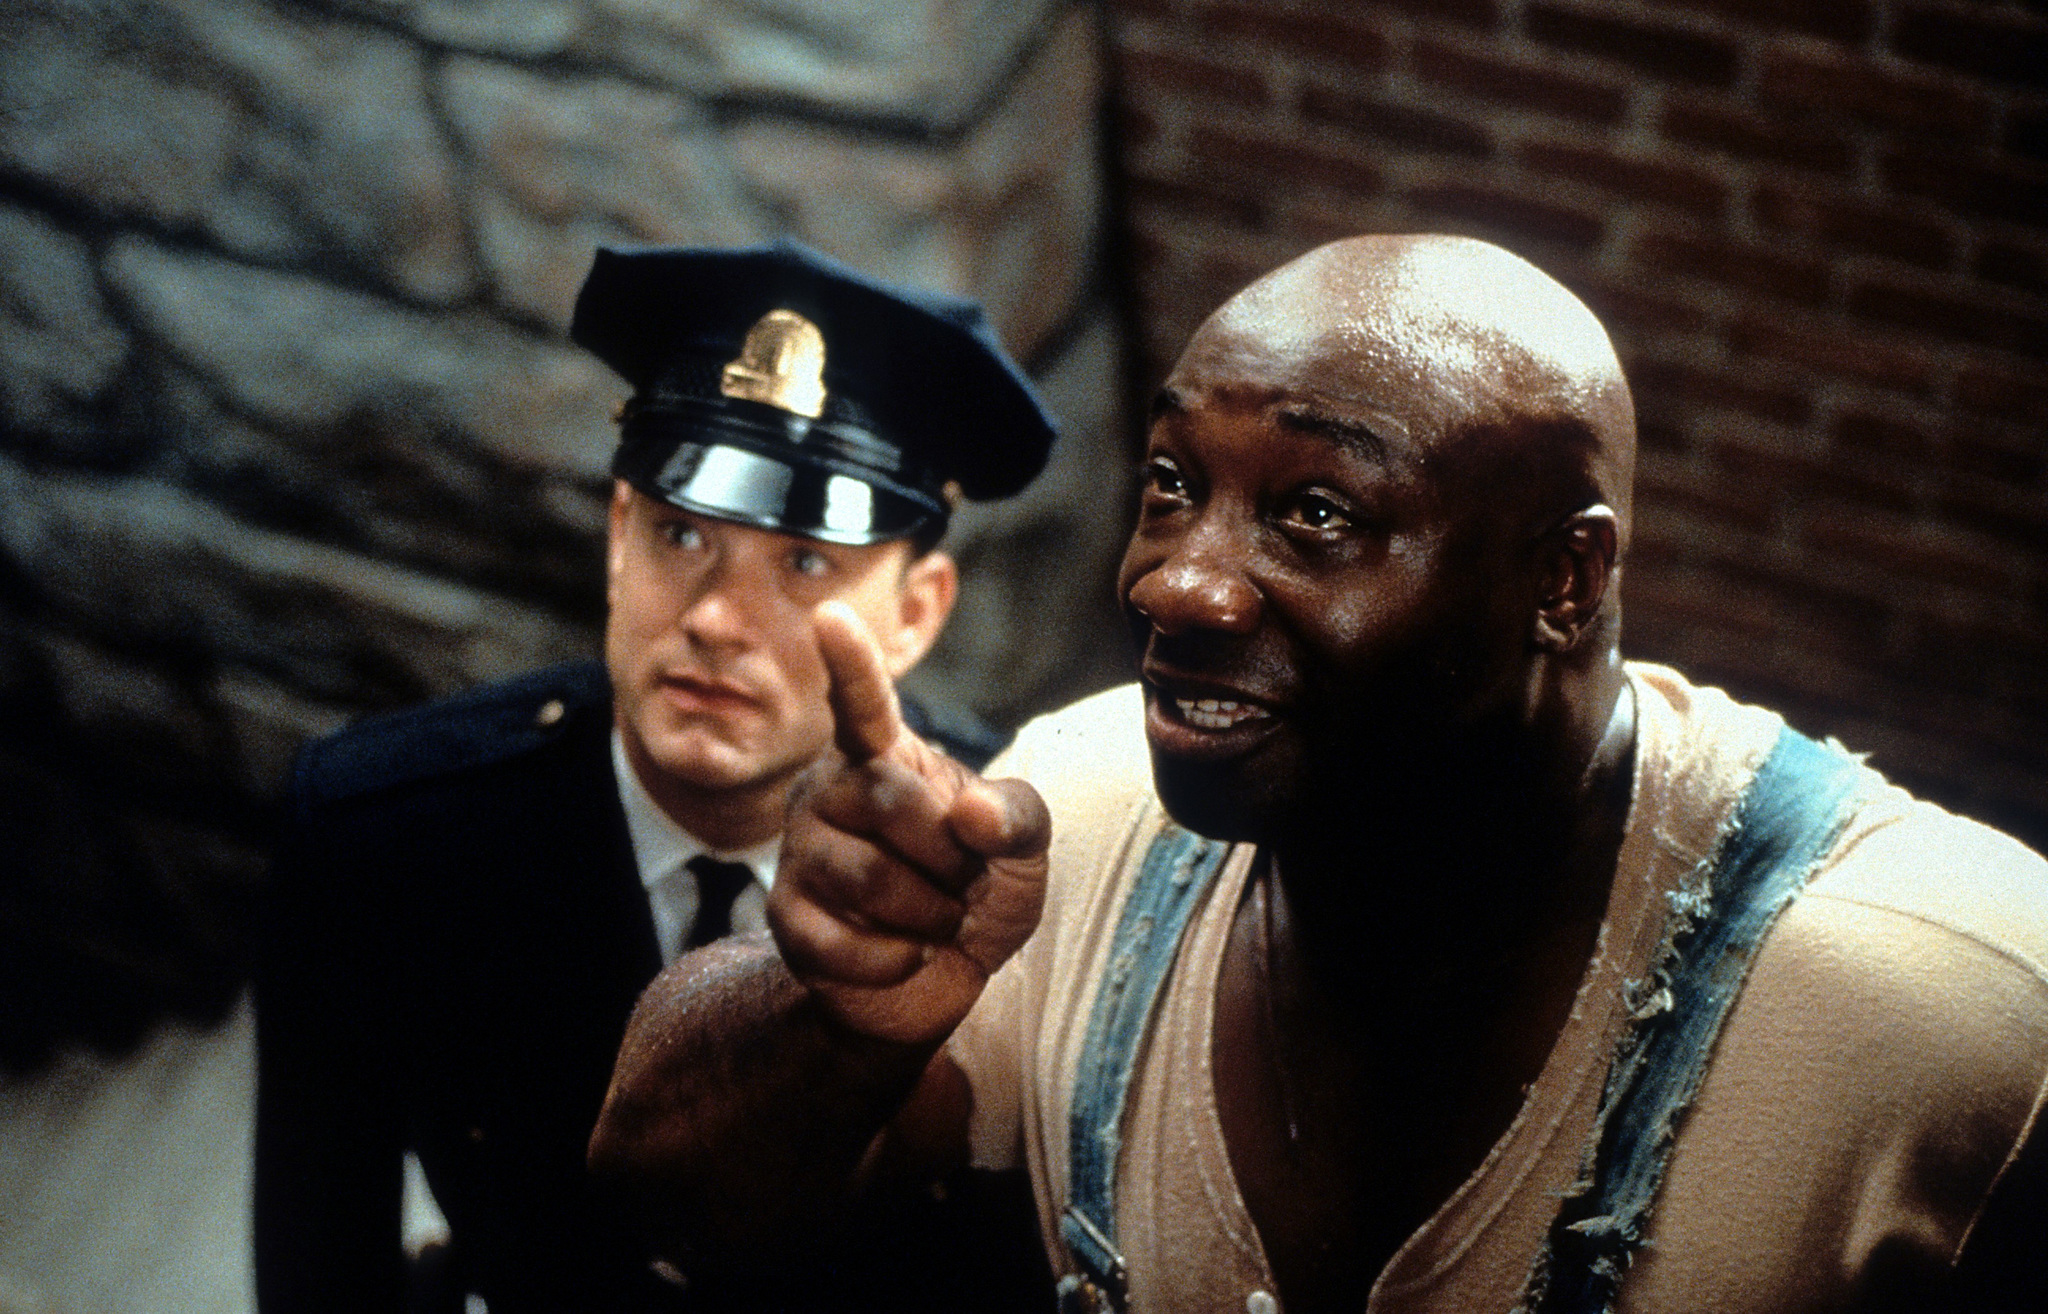 Tom Hanks and Michael Clarke Duncan in The Green Mile (1999)